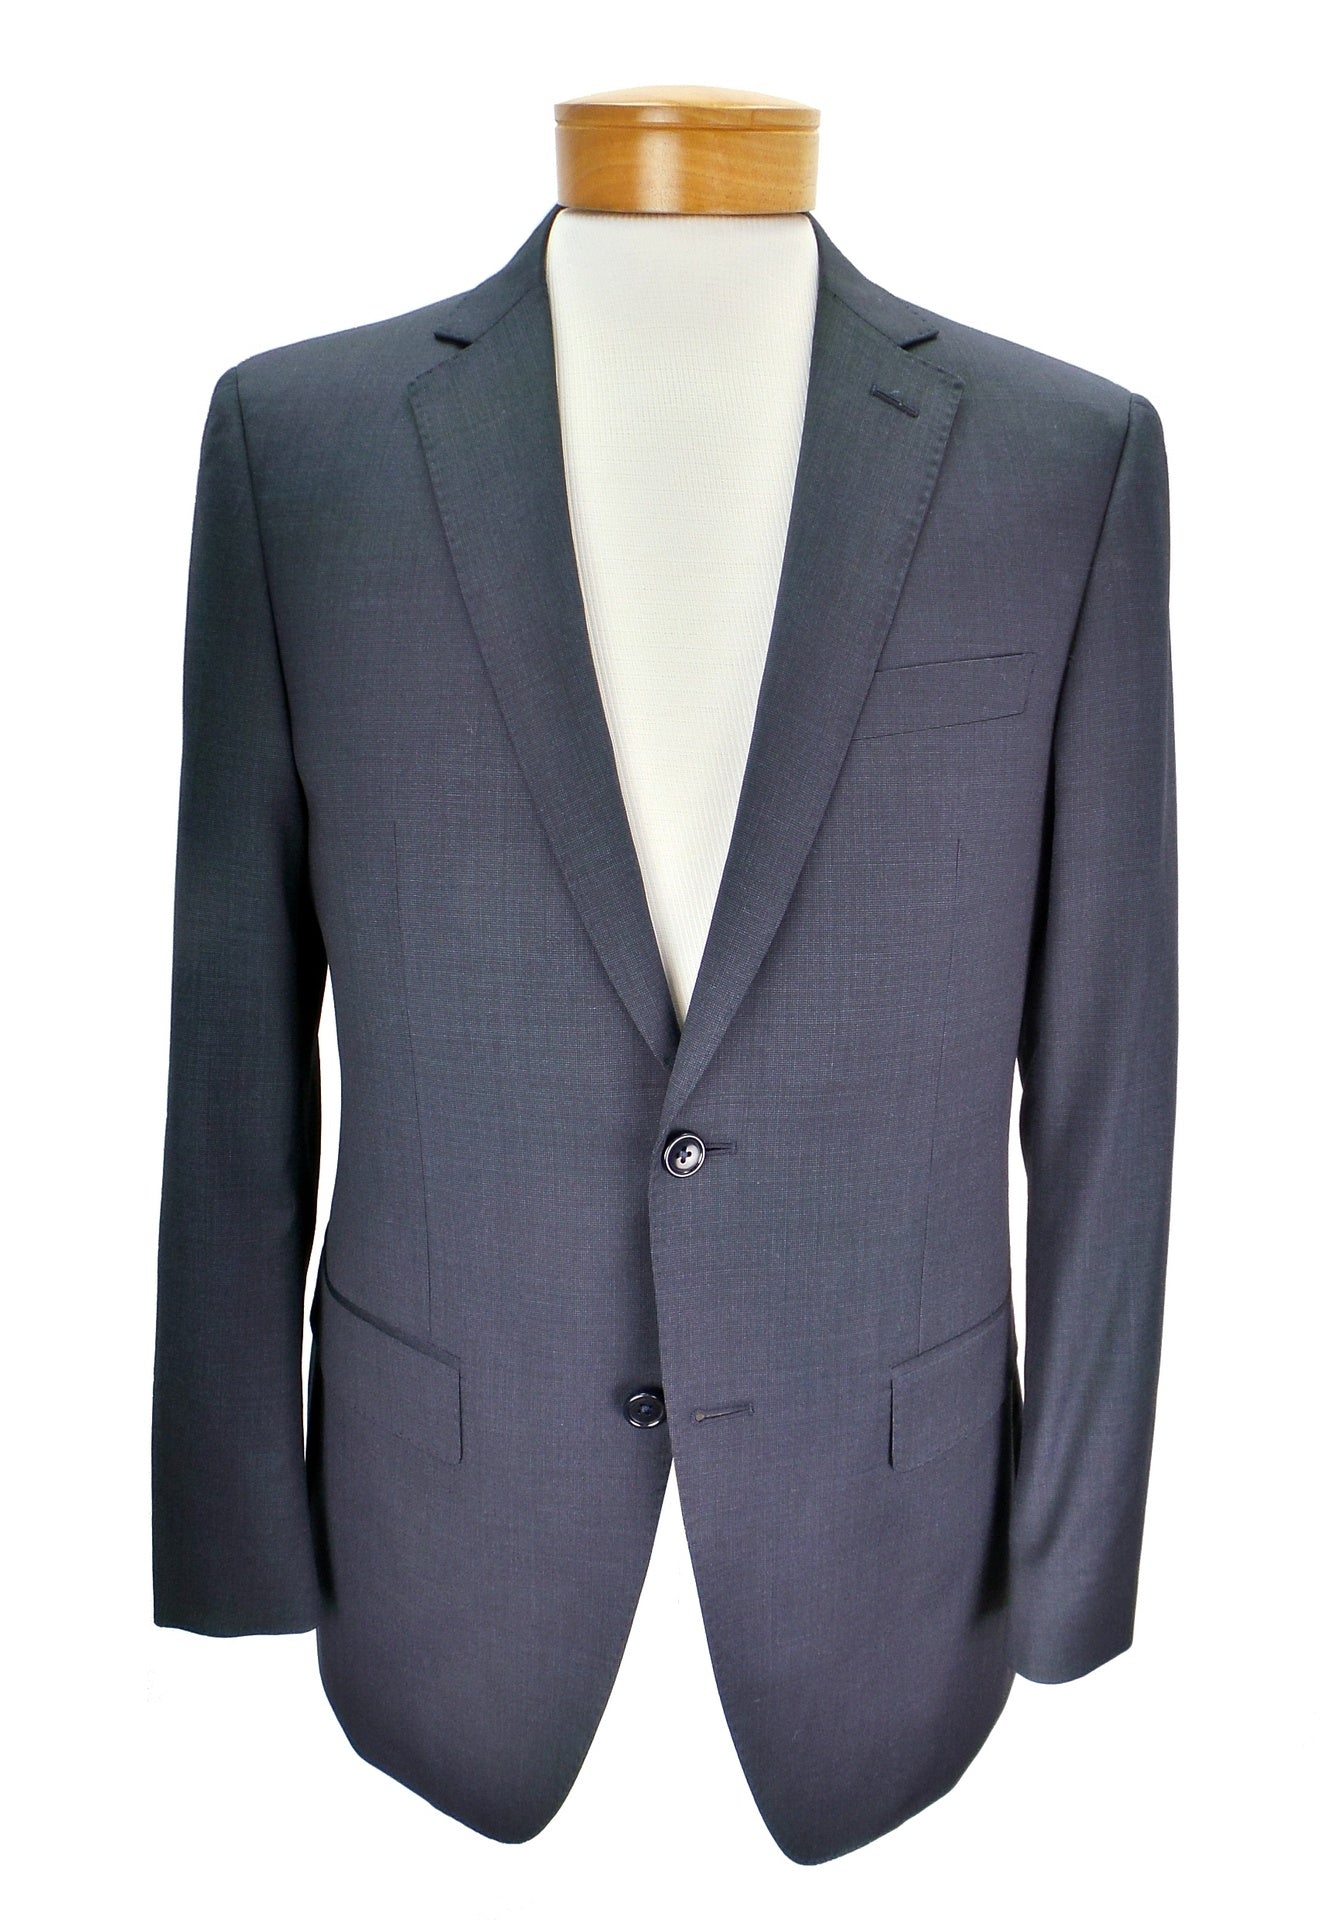 Seattle Thread Company Made to Measure Suit - K1 Series Fabric